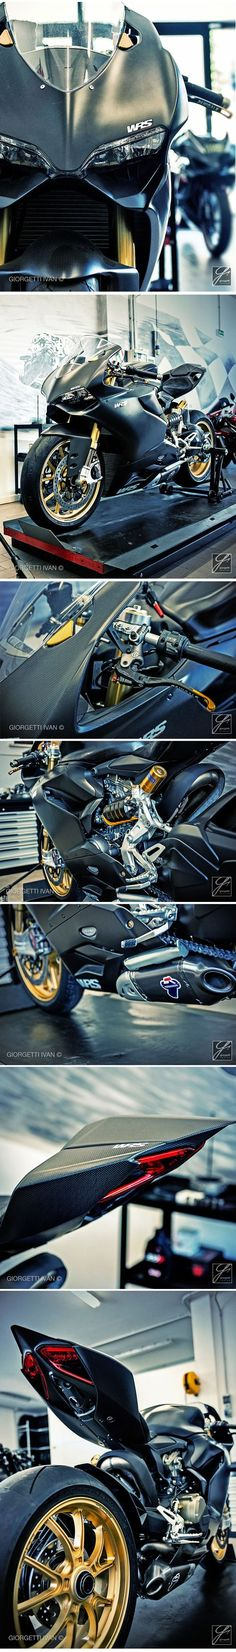 Ducati 1199 Full Carbon   #special #motorcycle by WRS evotech / Italy -    @Ivan Cherevko Giorgetti